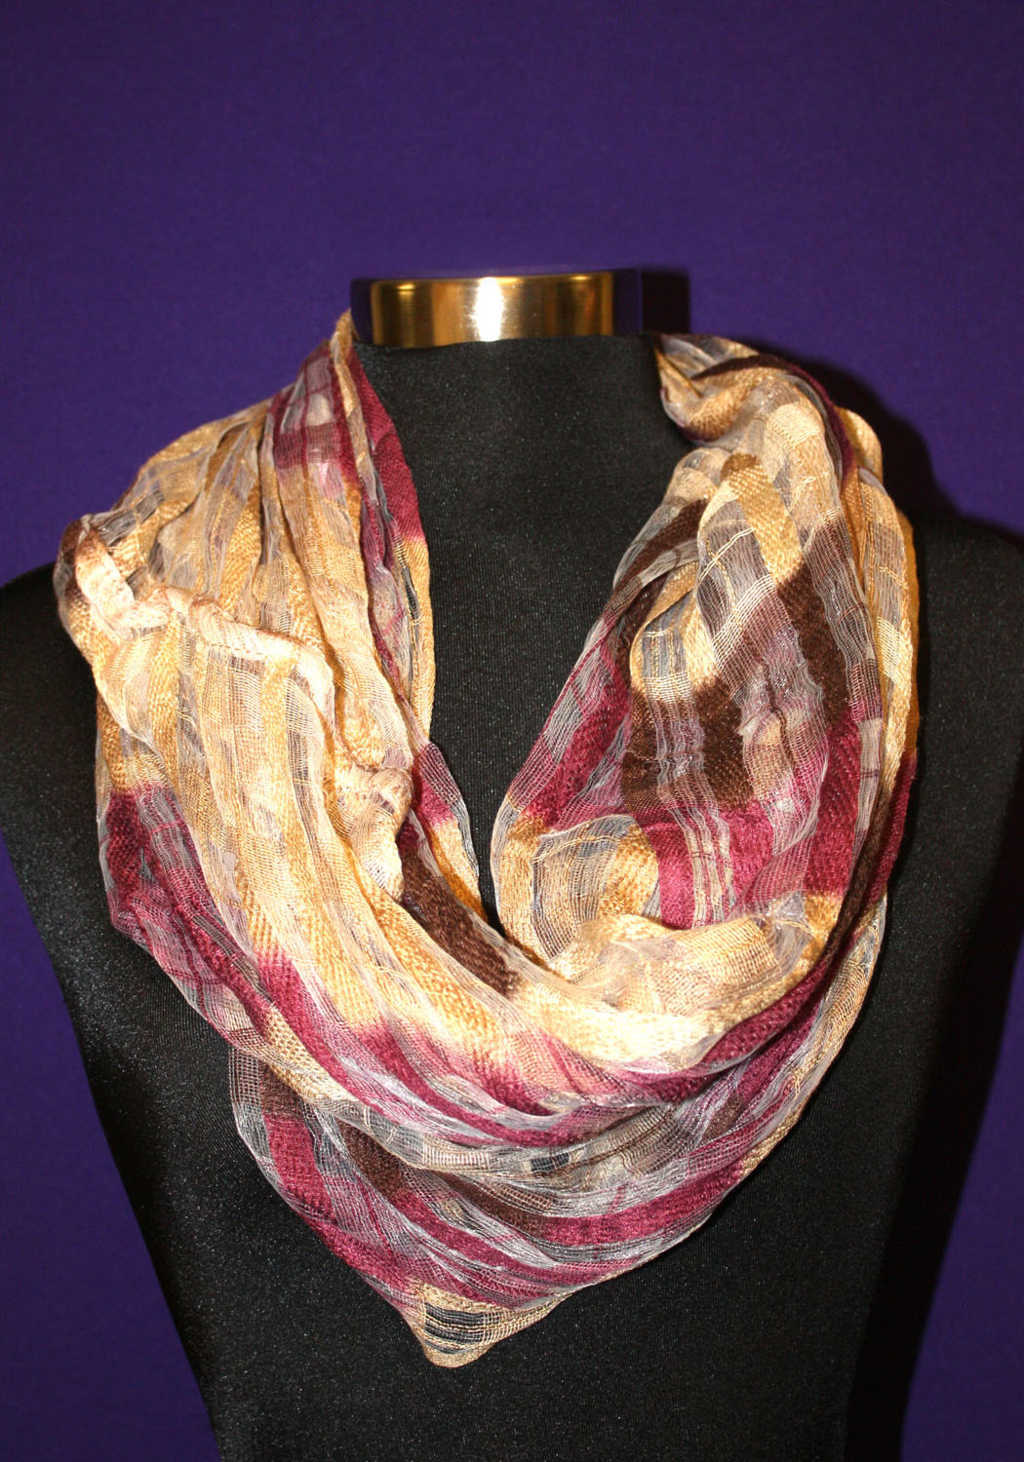 Maroon, Brown and Gold Scarf available at Mon General Hospital Apparel Gift Shop